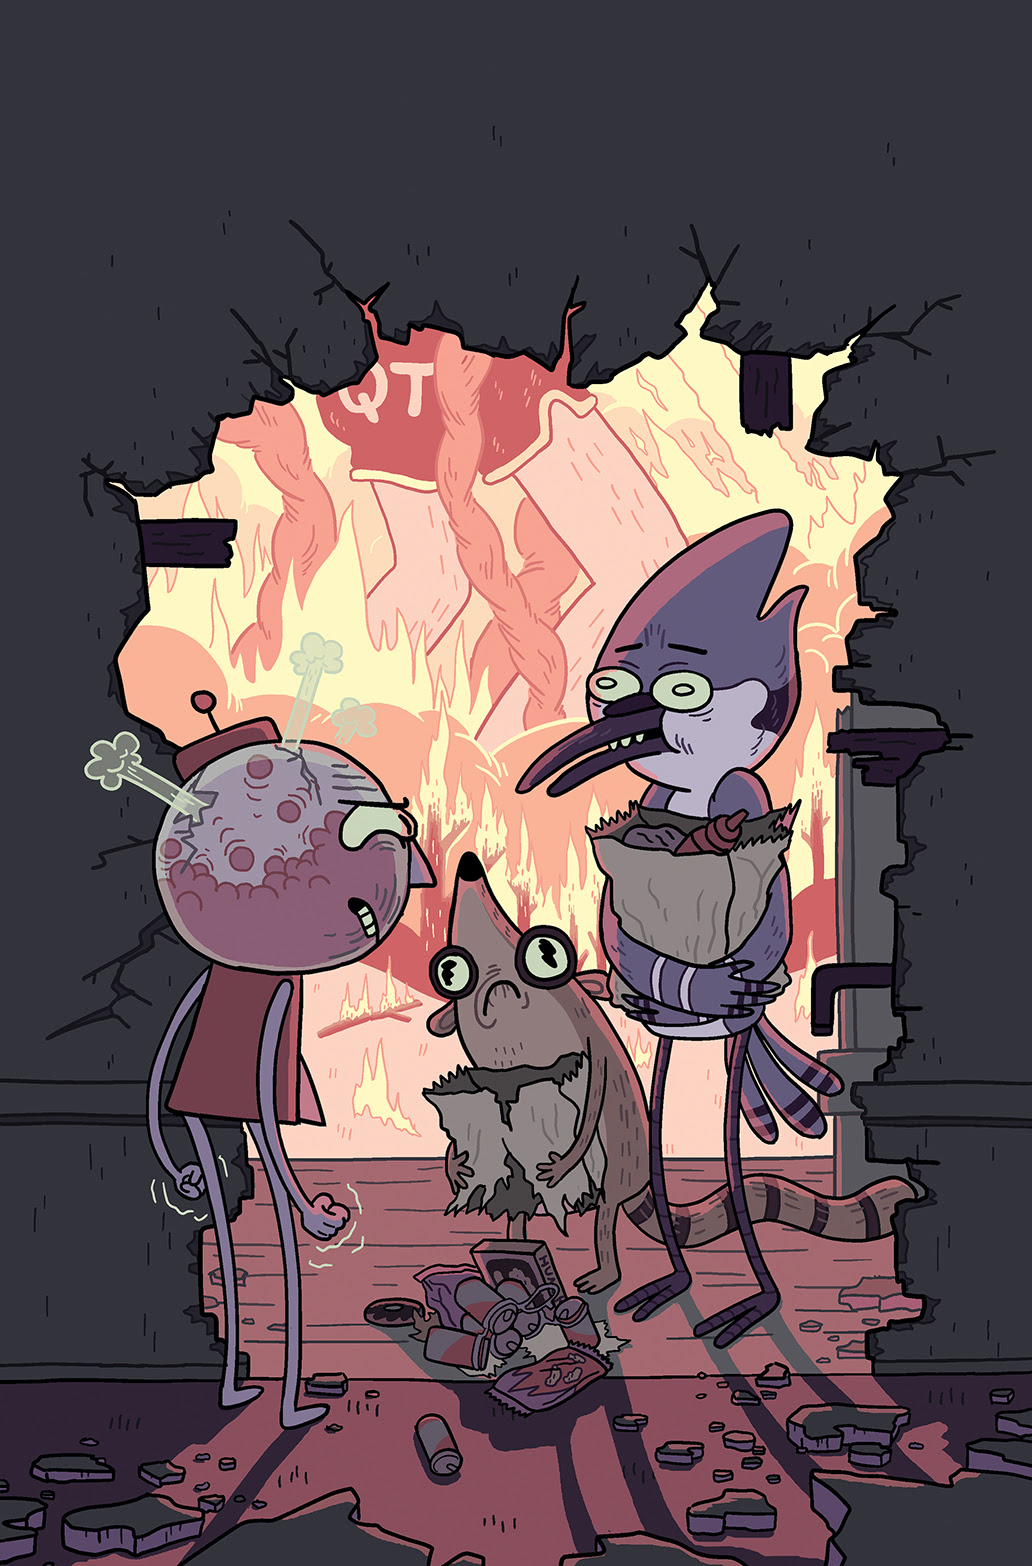 REGULAR SHOW 2014 ANNUAL #1 Cover B by Jen Lee